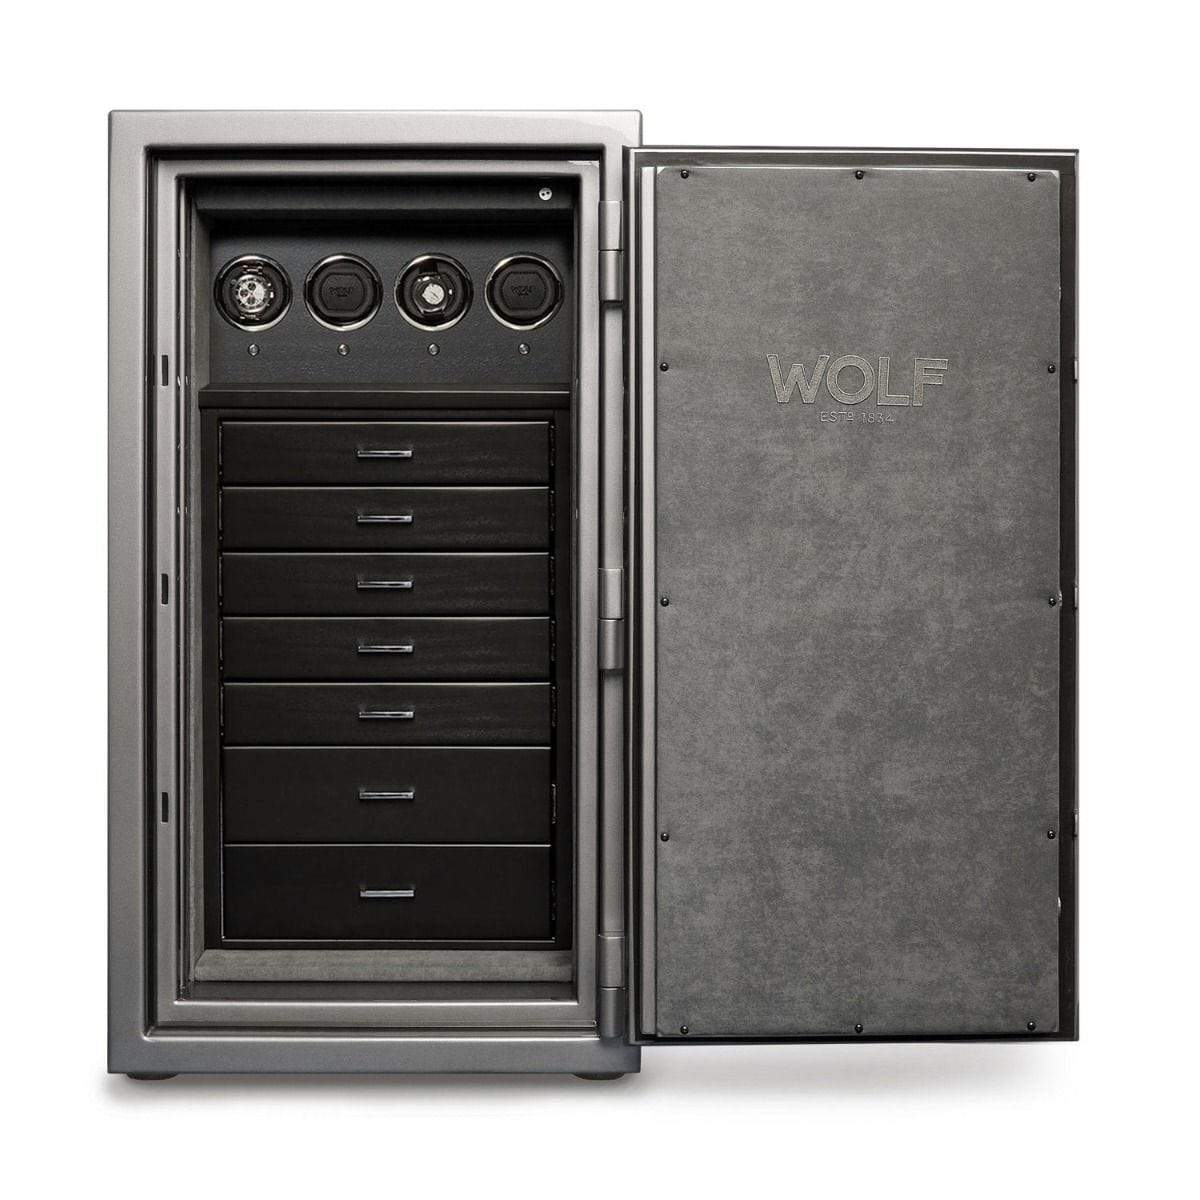 WOLF 1834 Atlas 4 Piece Winder Safe Armadillo Safe and Vault